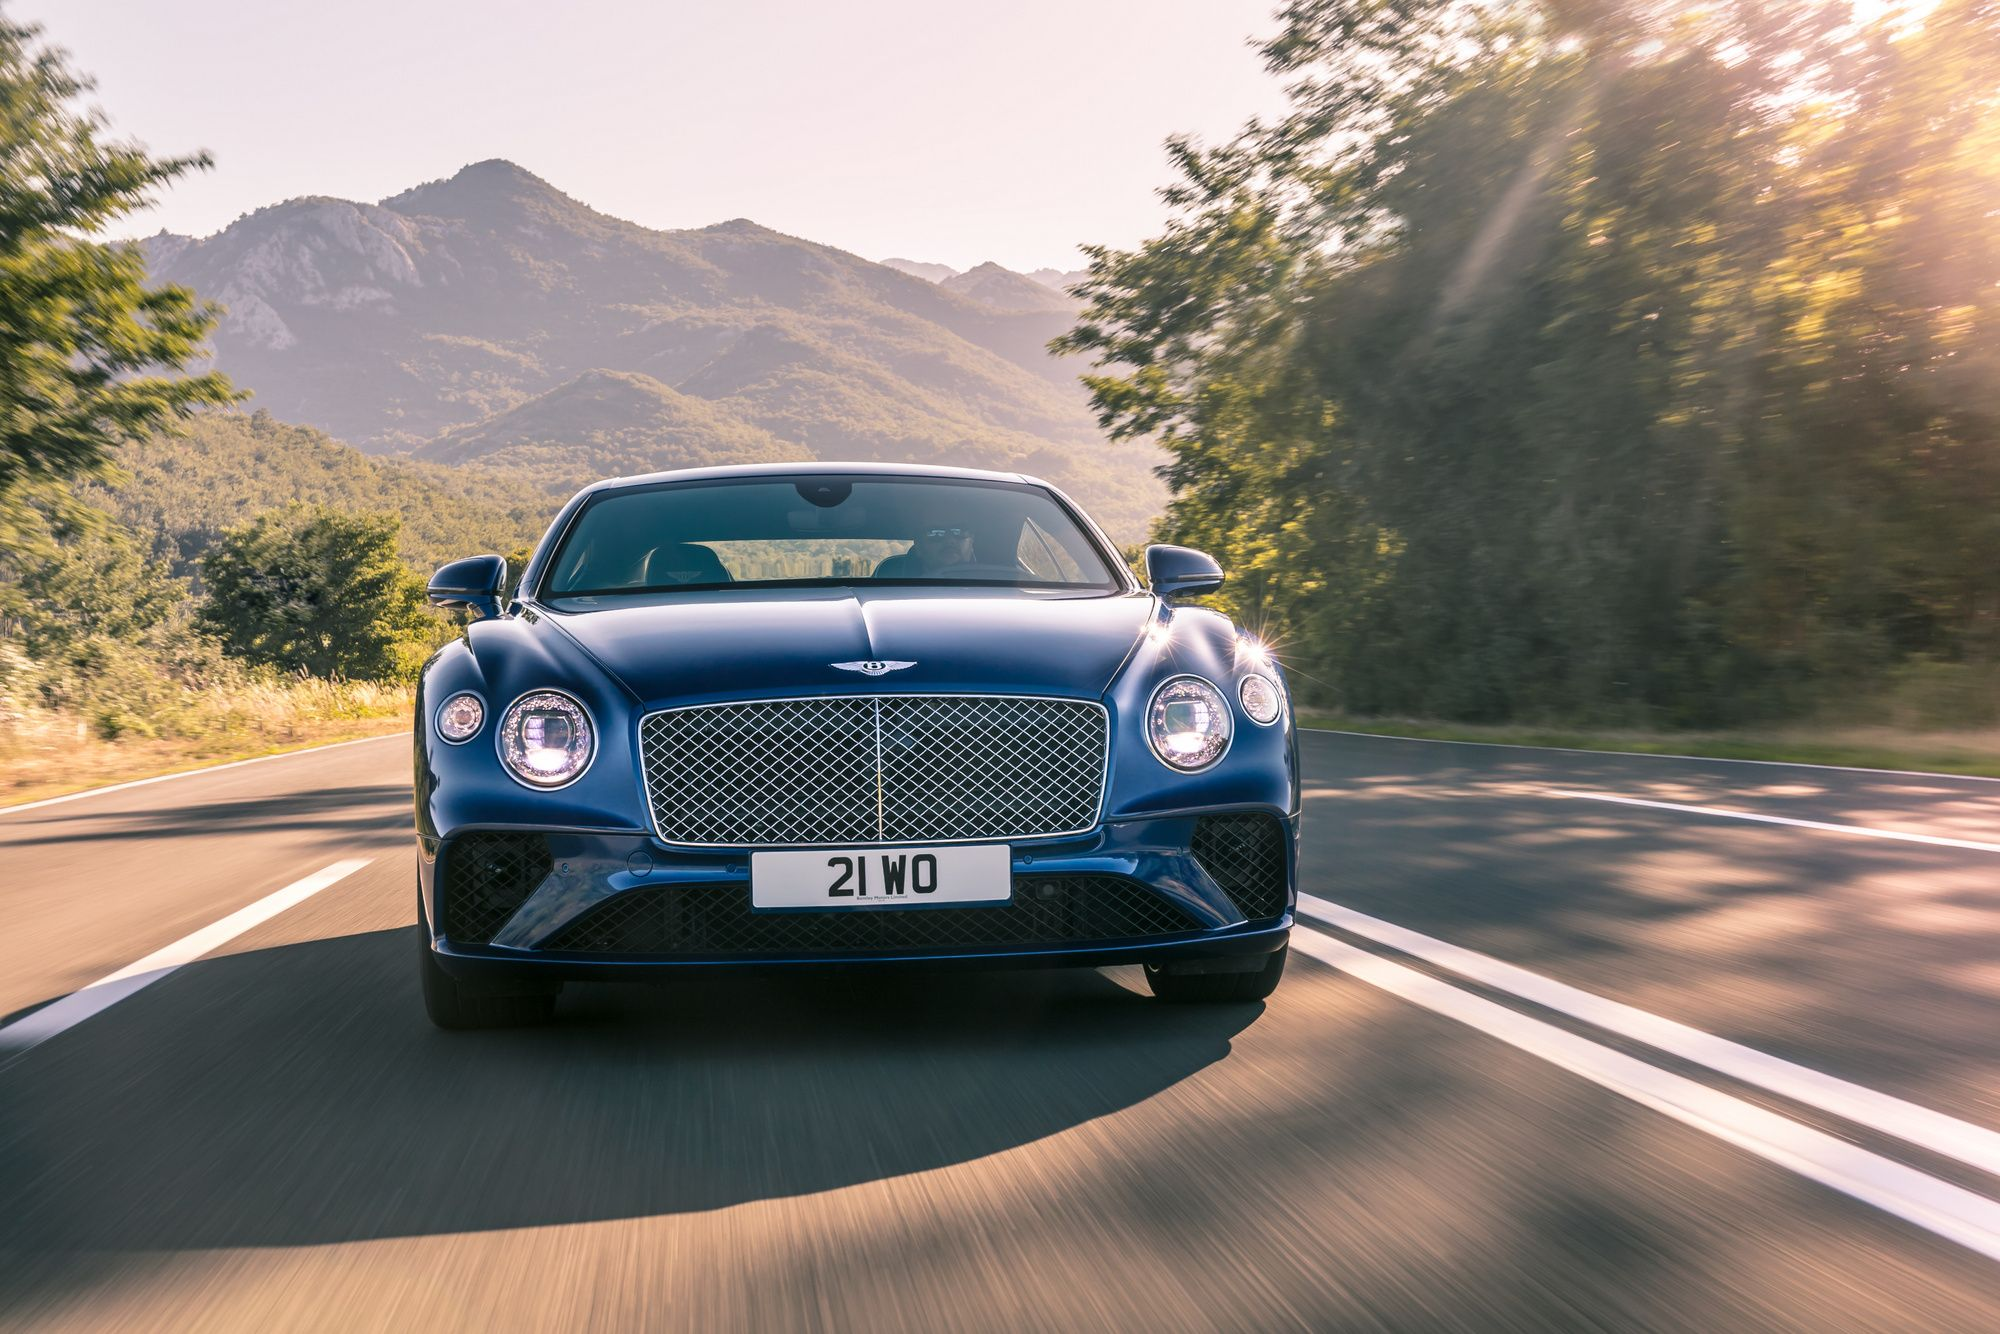 In Pictures: The All-New Bentley Continental GT